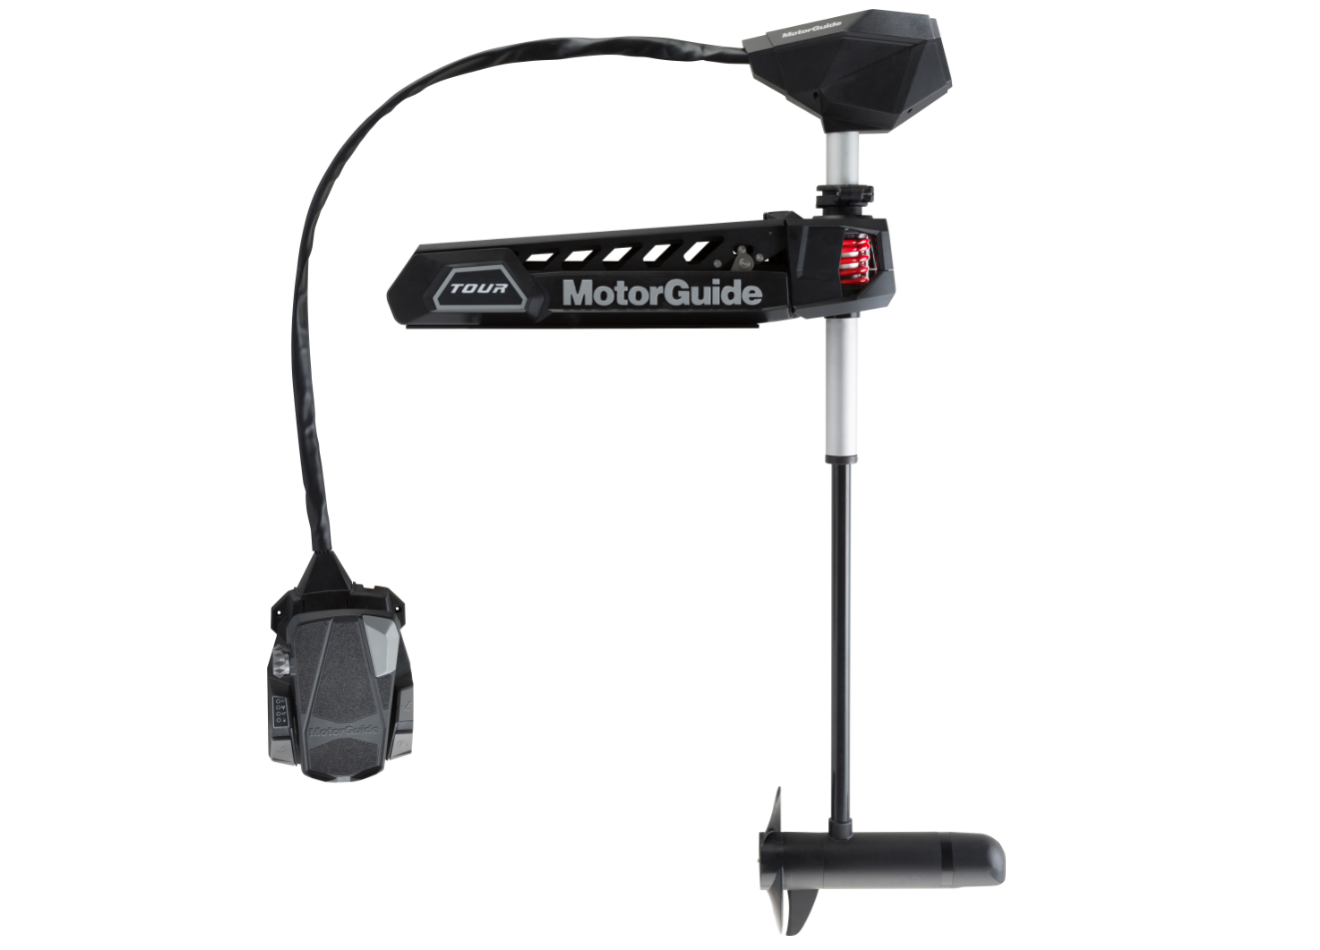 Motorguide Introduces true cable steer motor with GPS anchor